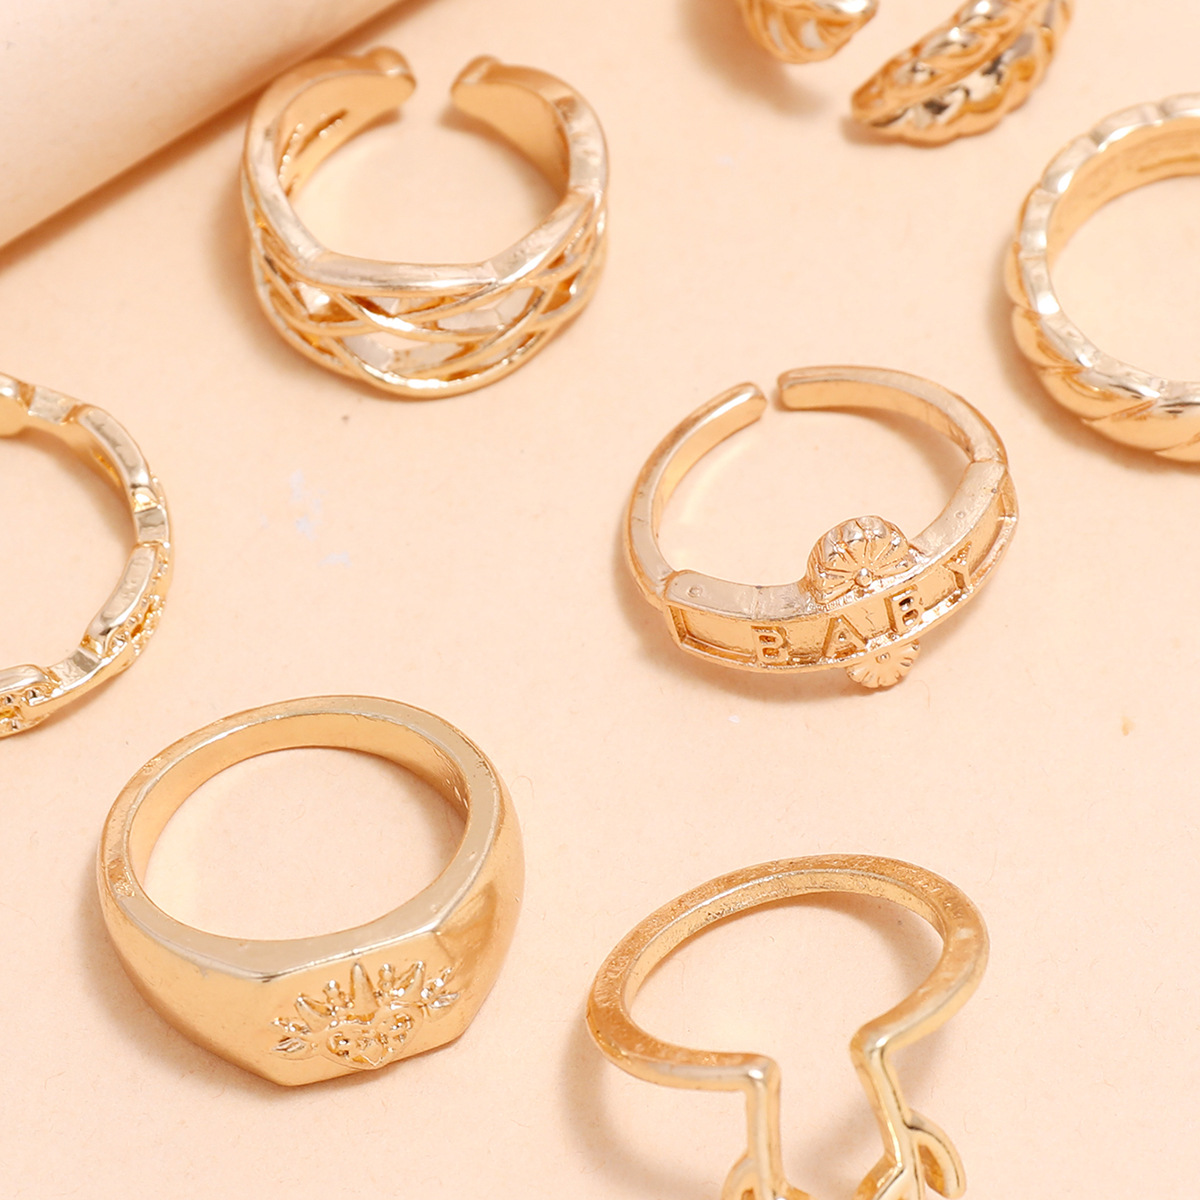 Hot selling fashion personality geometric ring antler mesh thorn leaf joint ring 9 piece set NHPV257775